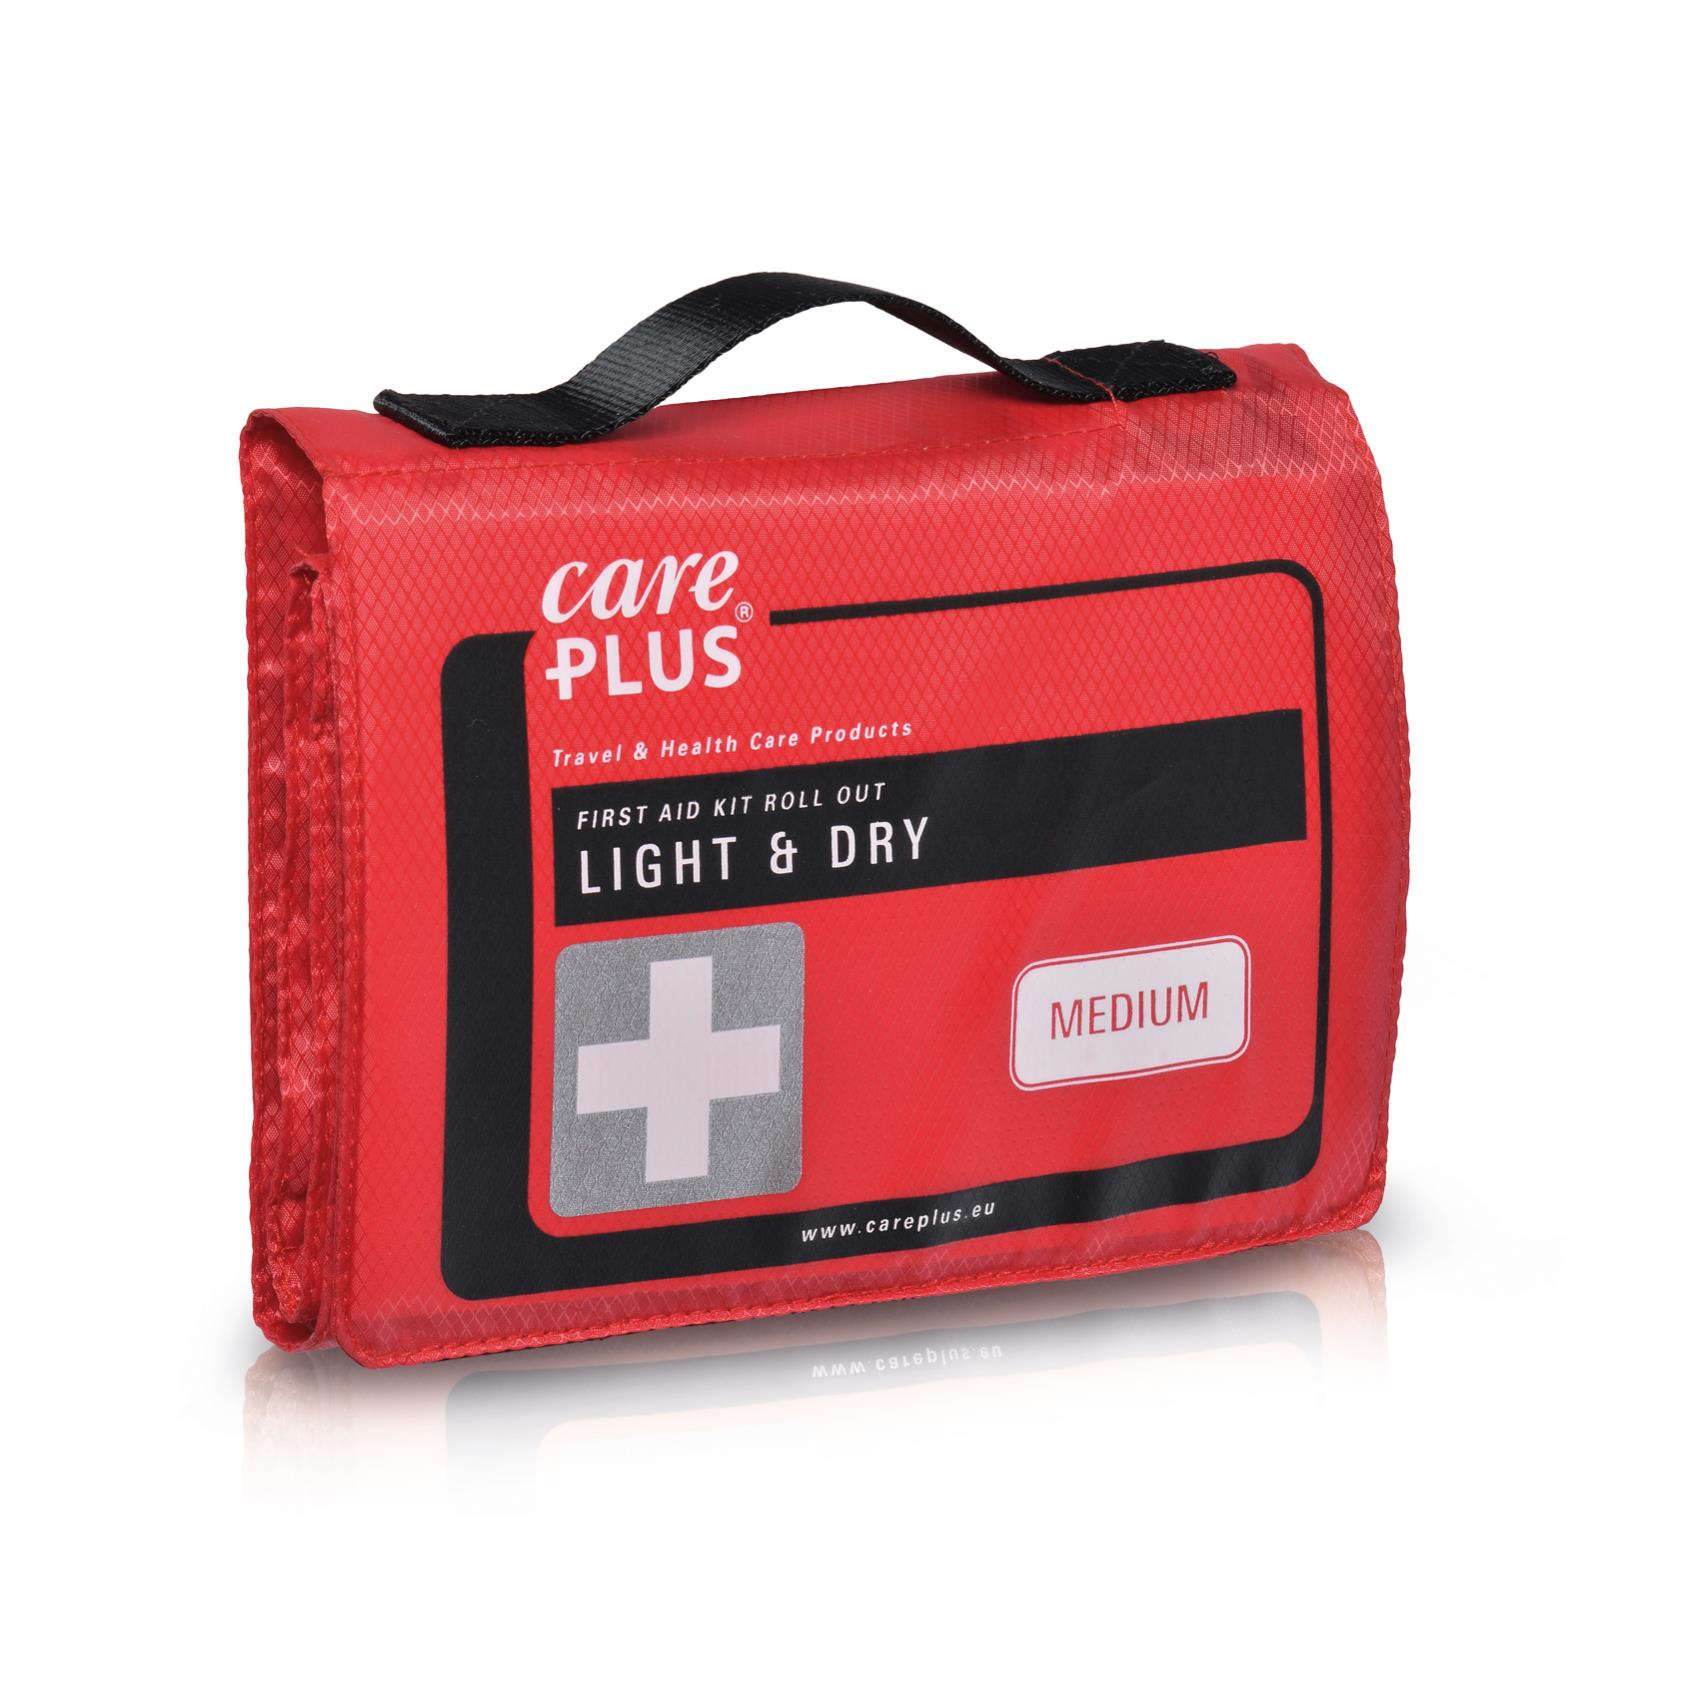 Care Plus® CP® First Aid Roll Out - Light & Dry Medium Erste Hilfe Set von Care Plus®